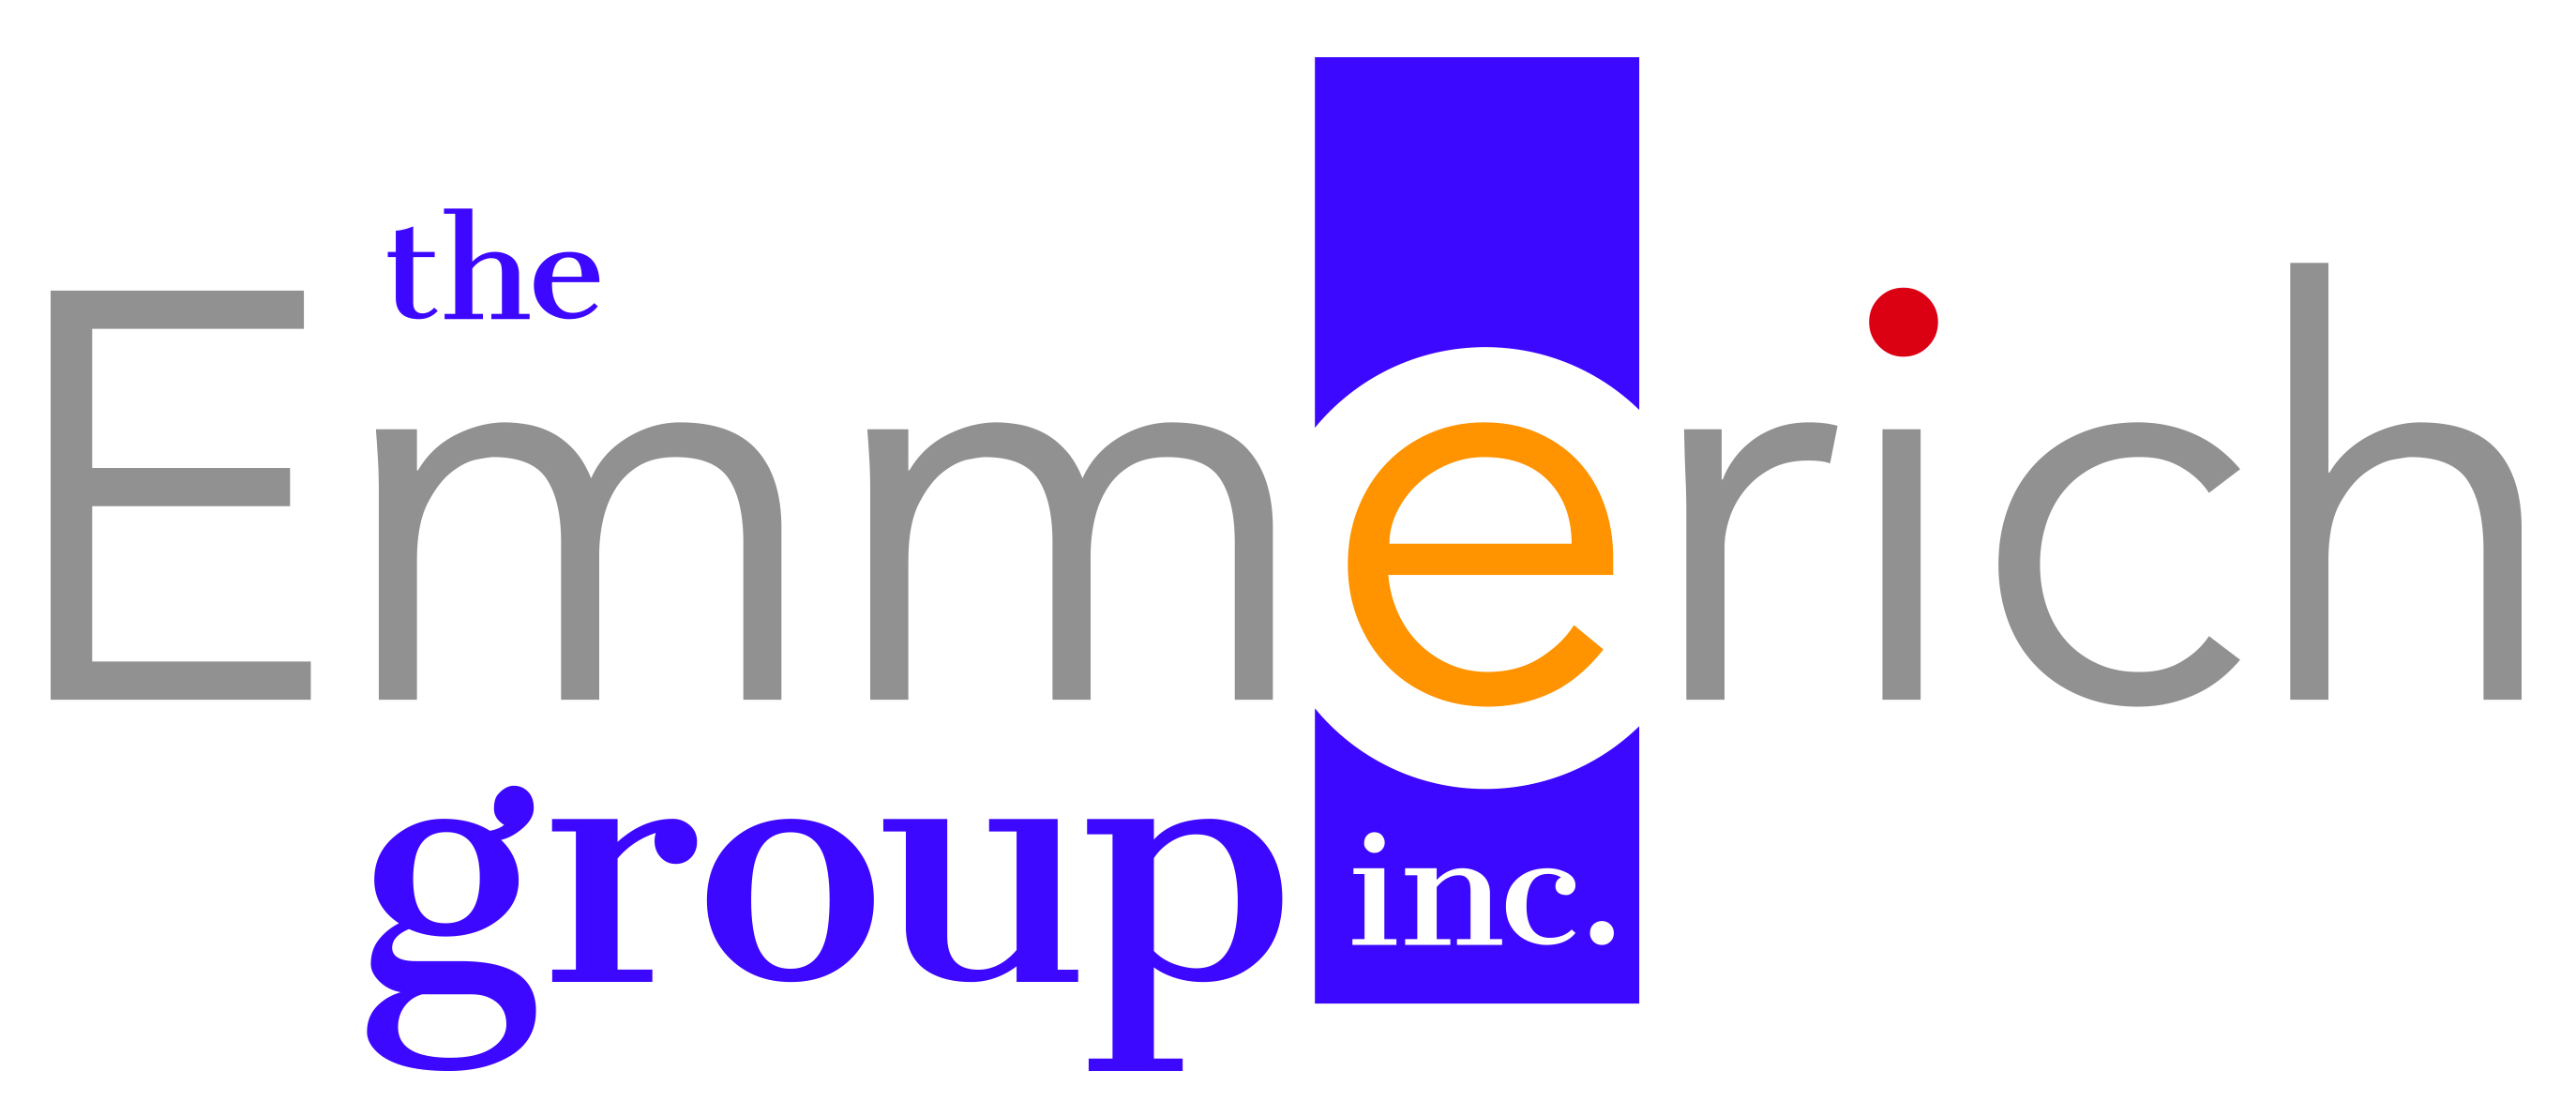 The Emmerich Group, Inc.<sup>®</sup>